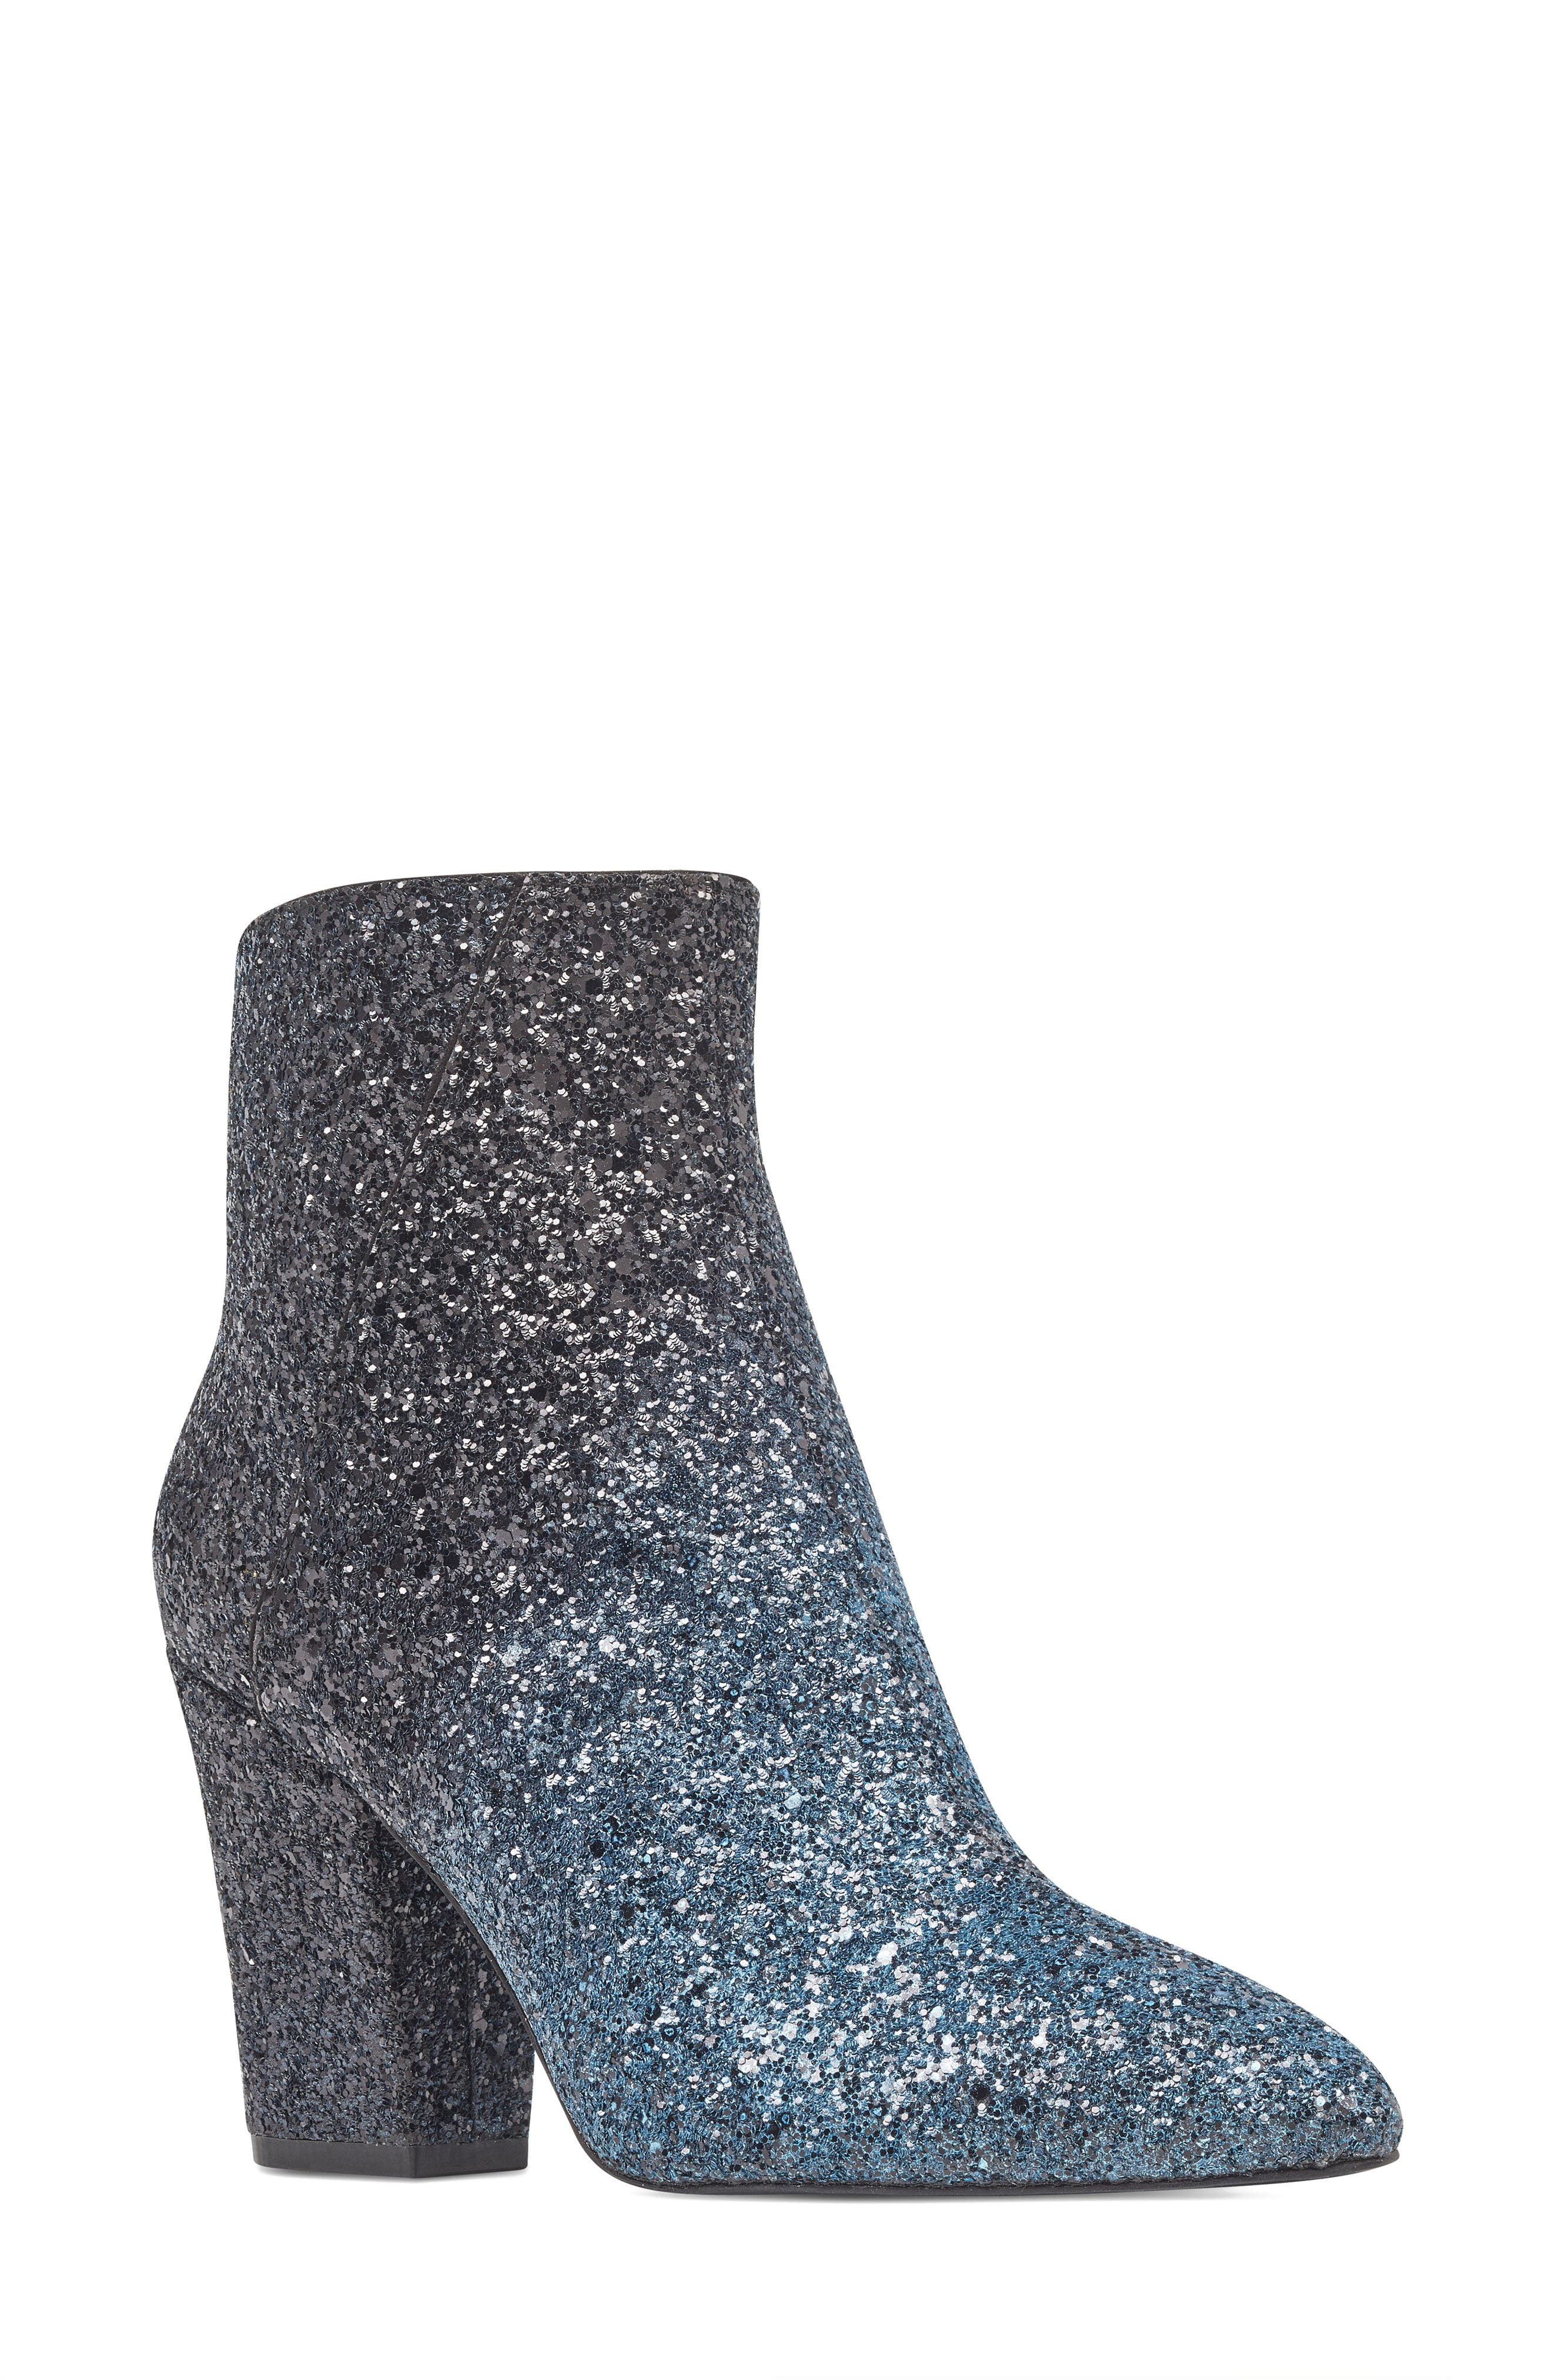 NINE WEST Savitra Pointy Toe Bootie, Main, color, 040